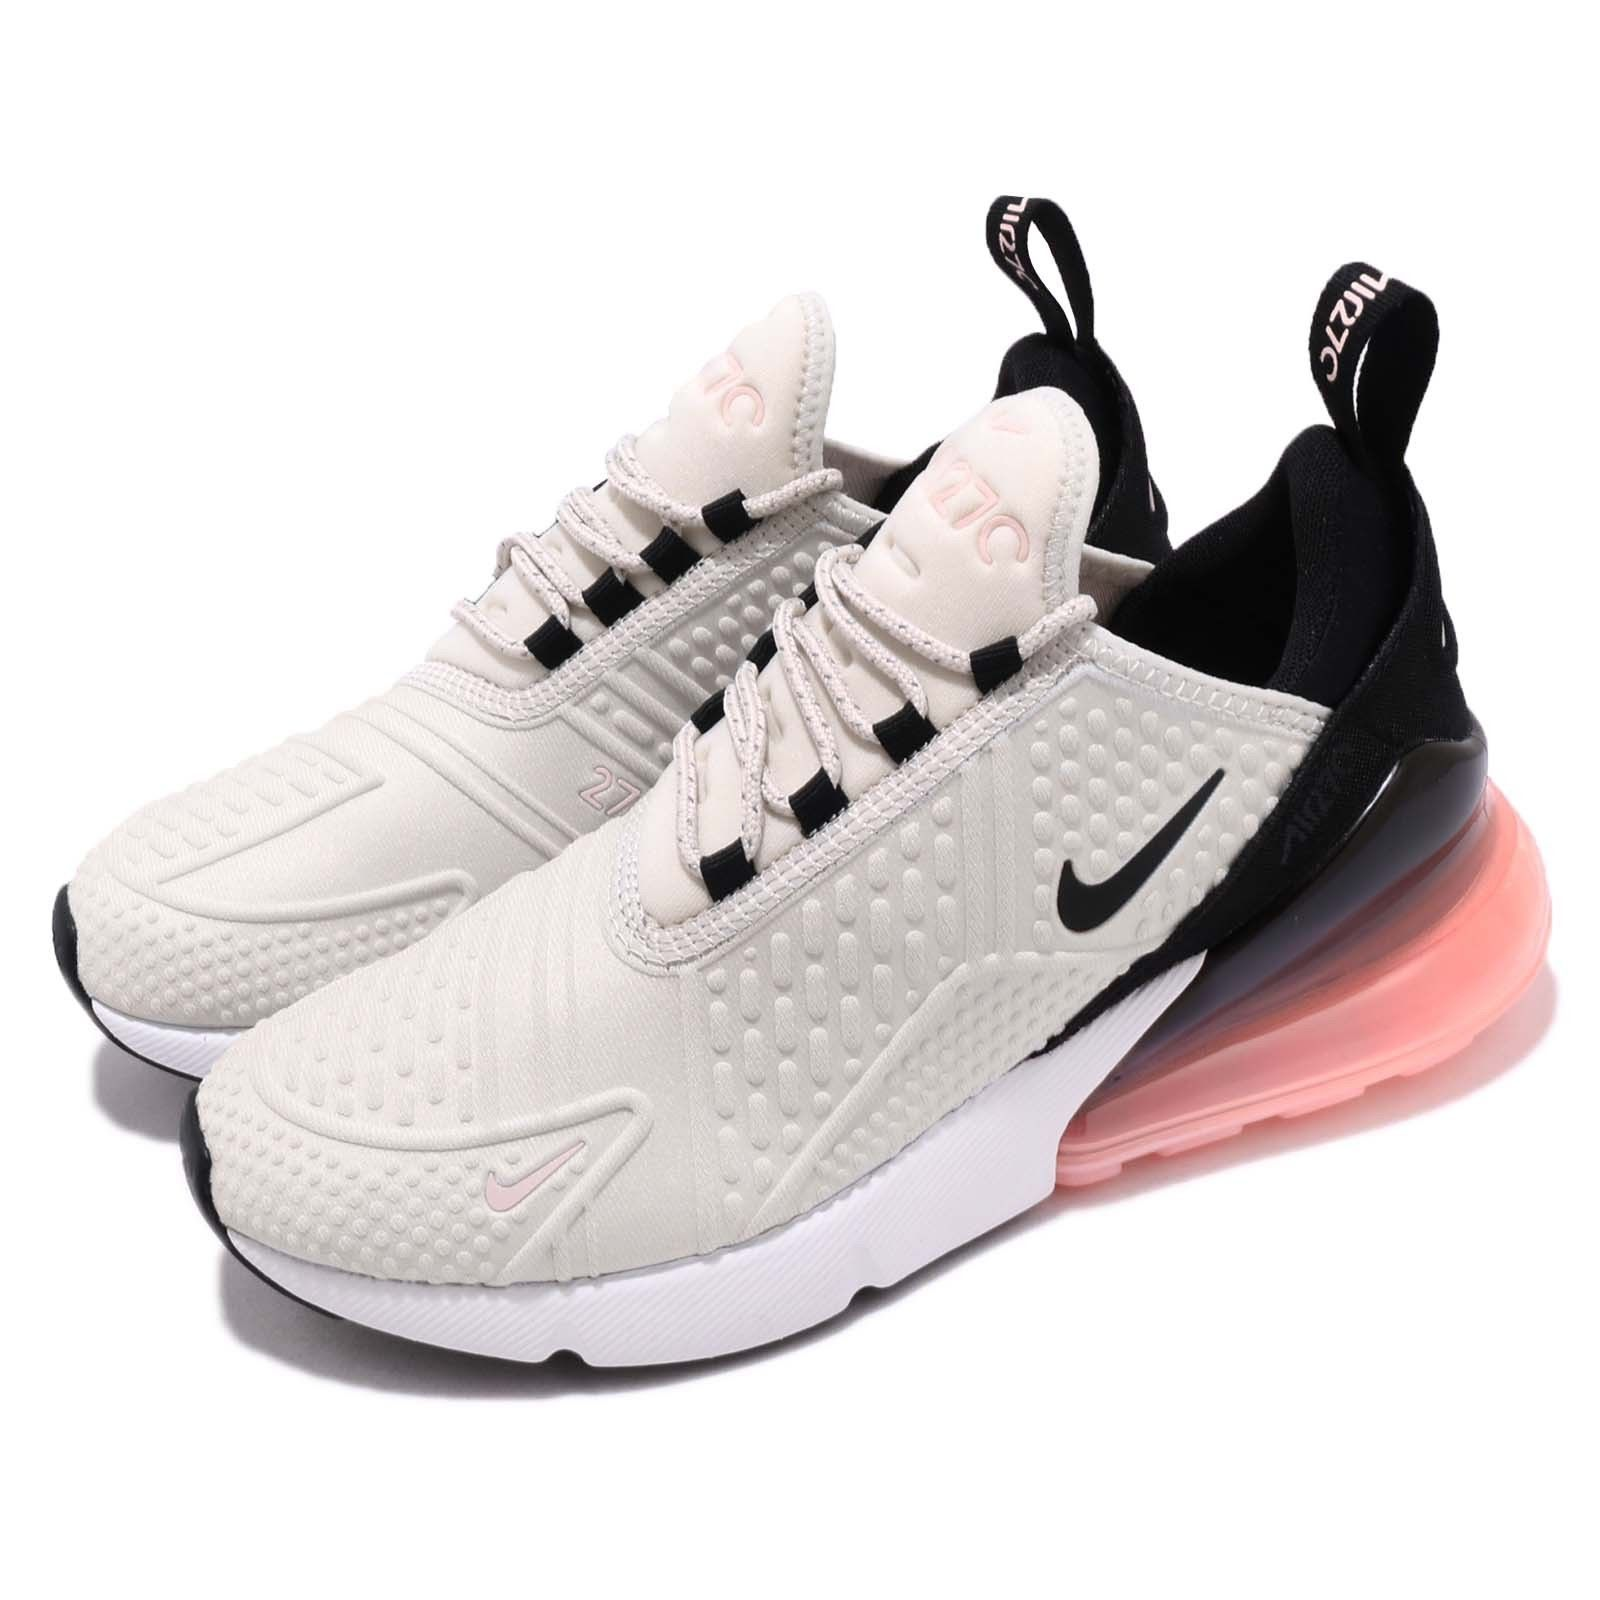 93661bf2ccc12 Details about Nike Air Max 270 SE GS Pink Grey White Kid Youth Women ...